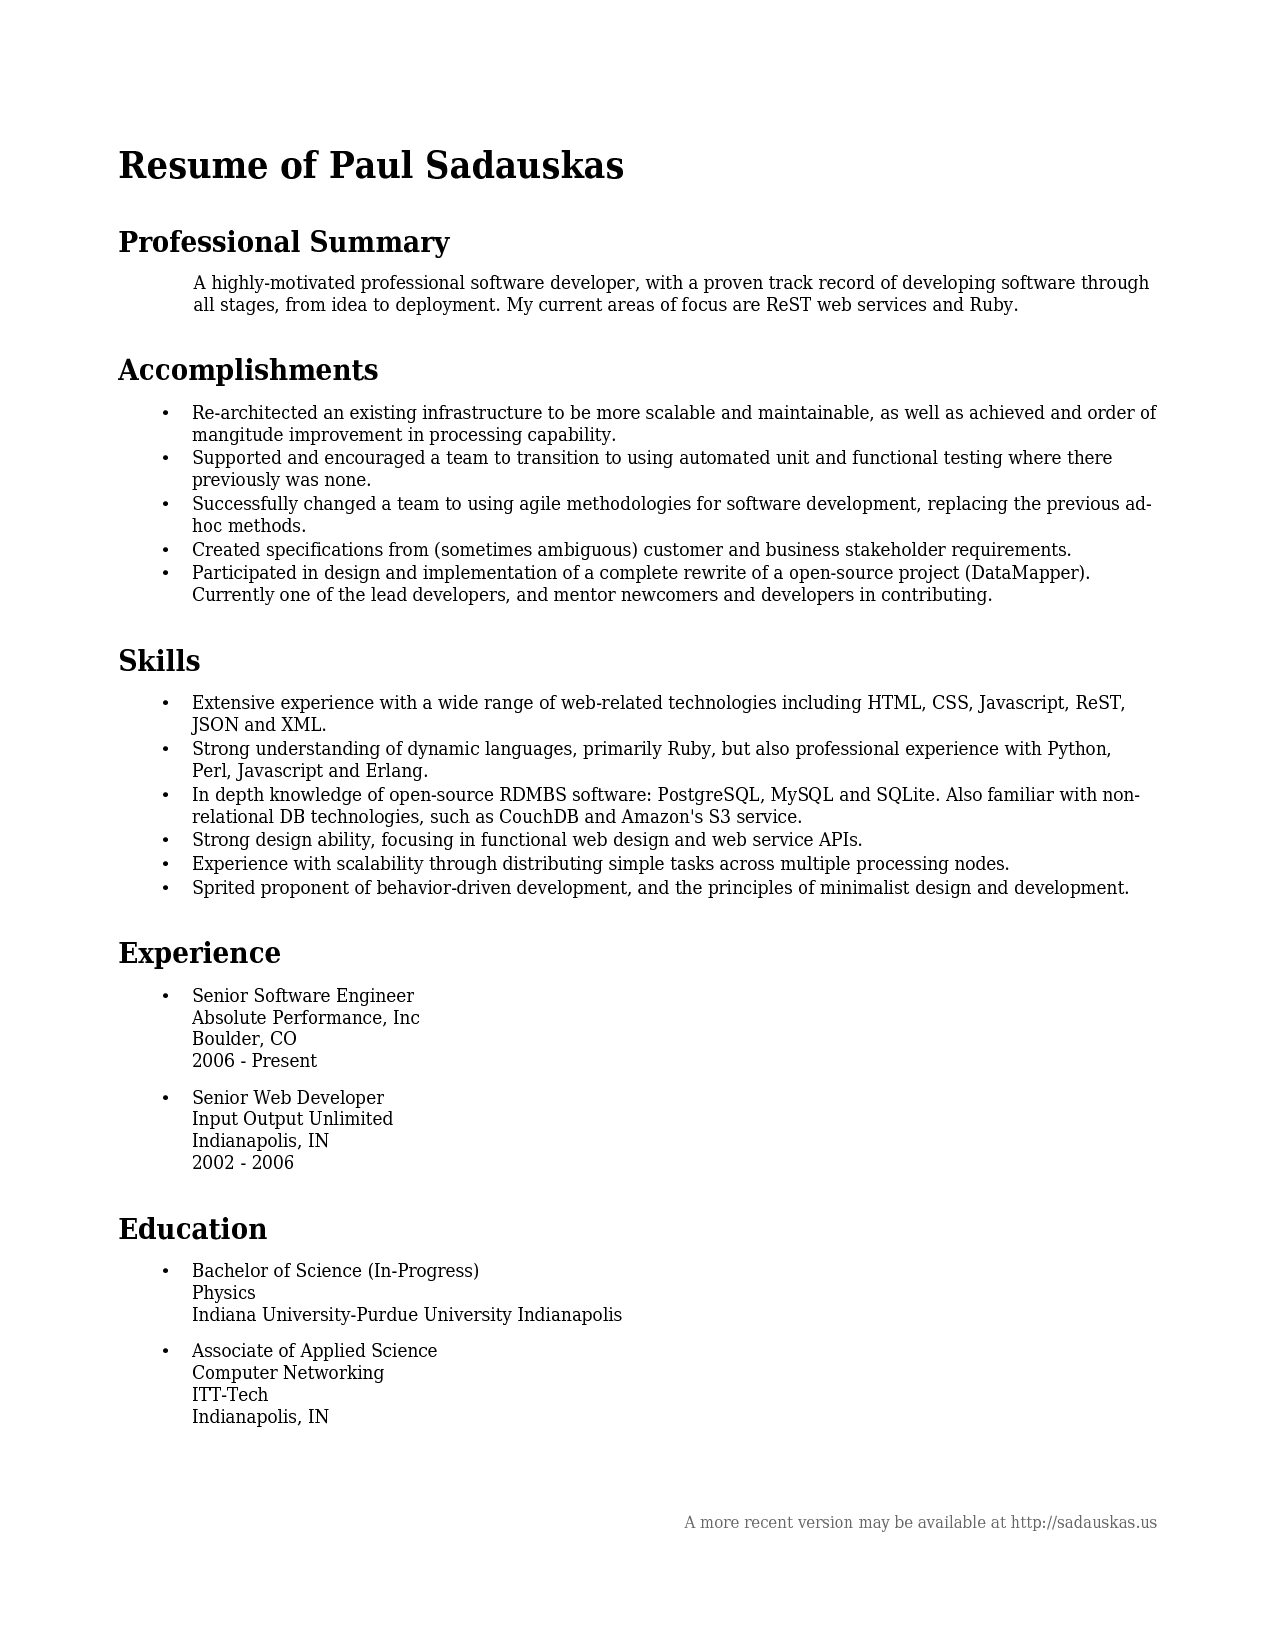 Exceptional Professional Summary Resumes